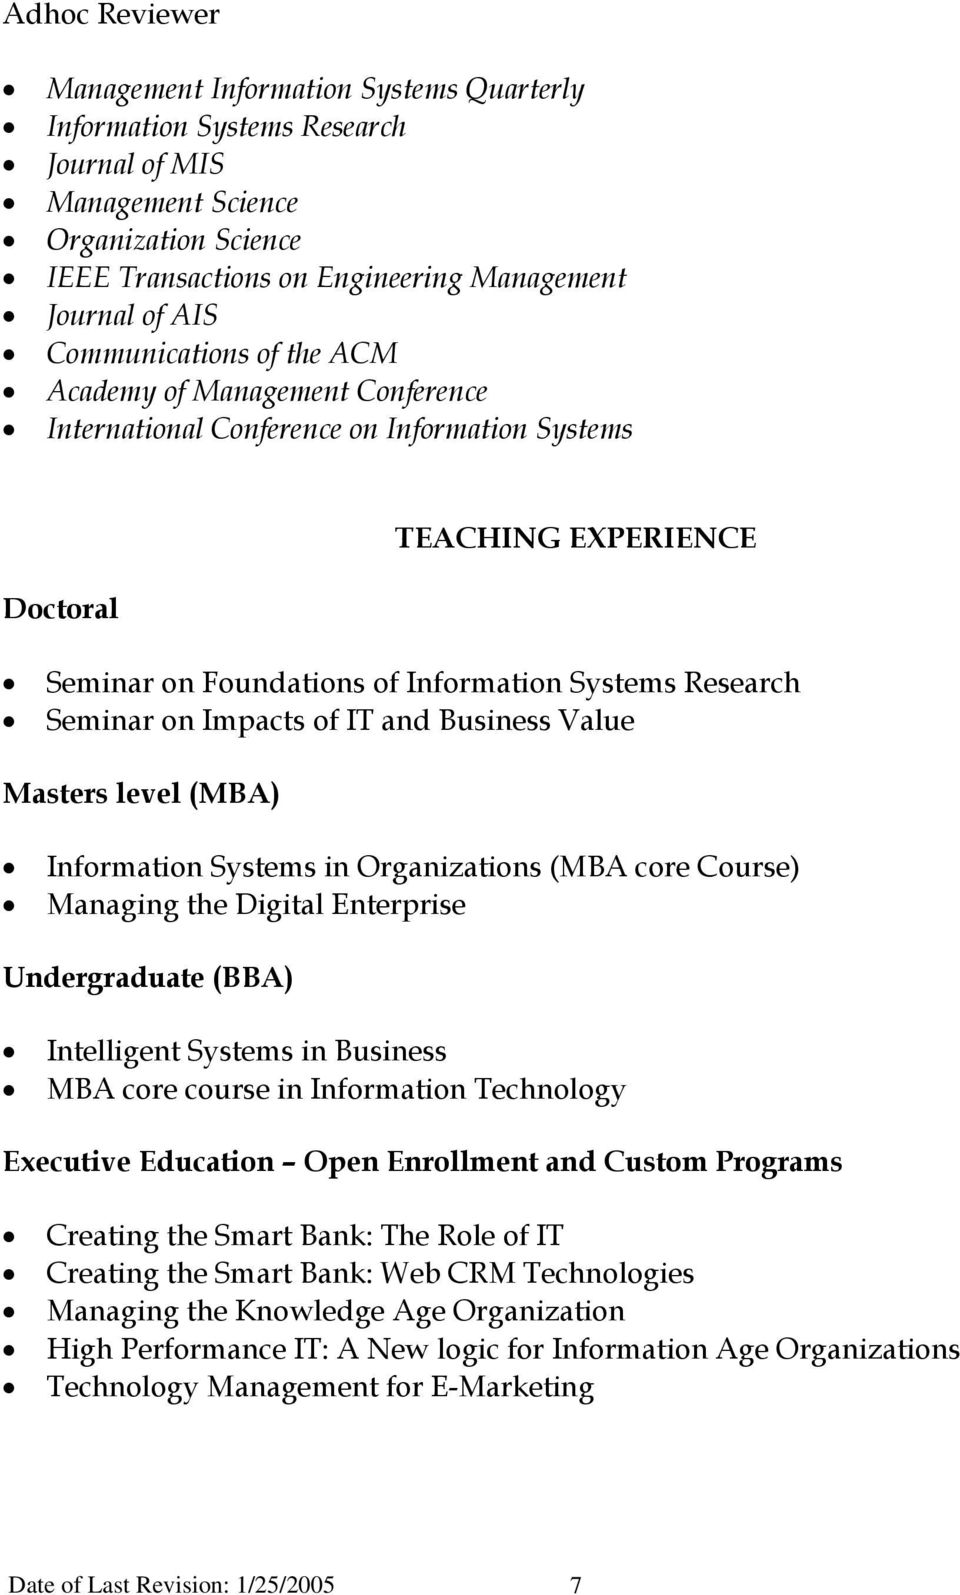 on Impacts of IT and Business Value Masters level (MBA) Information Systems in Organizations (MBA core Course) Managing the Digital Enterprise Undergraduate (BBA) Intelligent Systems in Business MBA